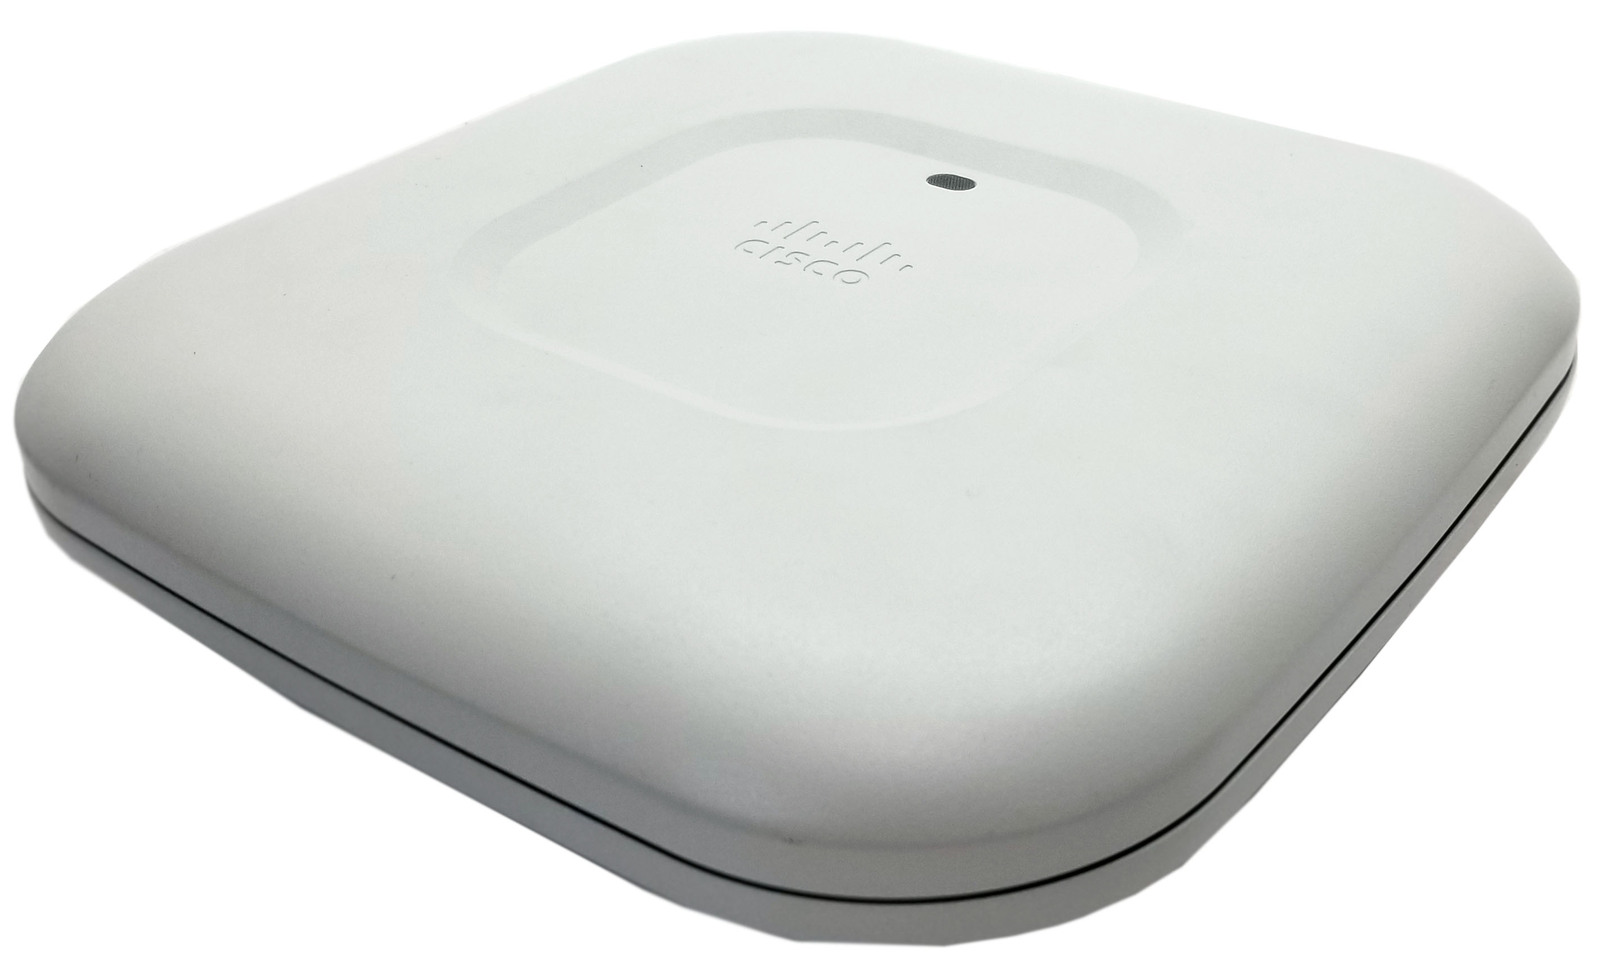 Cisco Air-Cap1702I-B-K9 Dual Band Access Point Bin:7